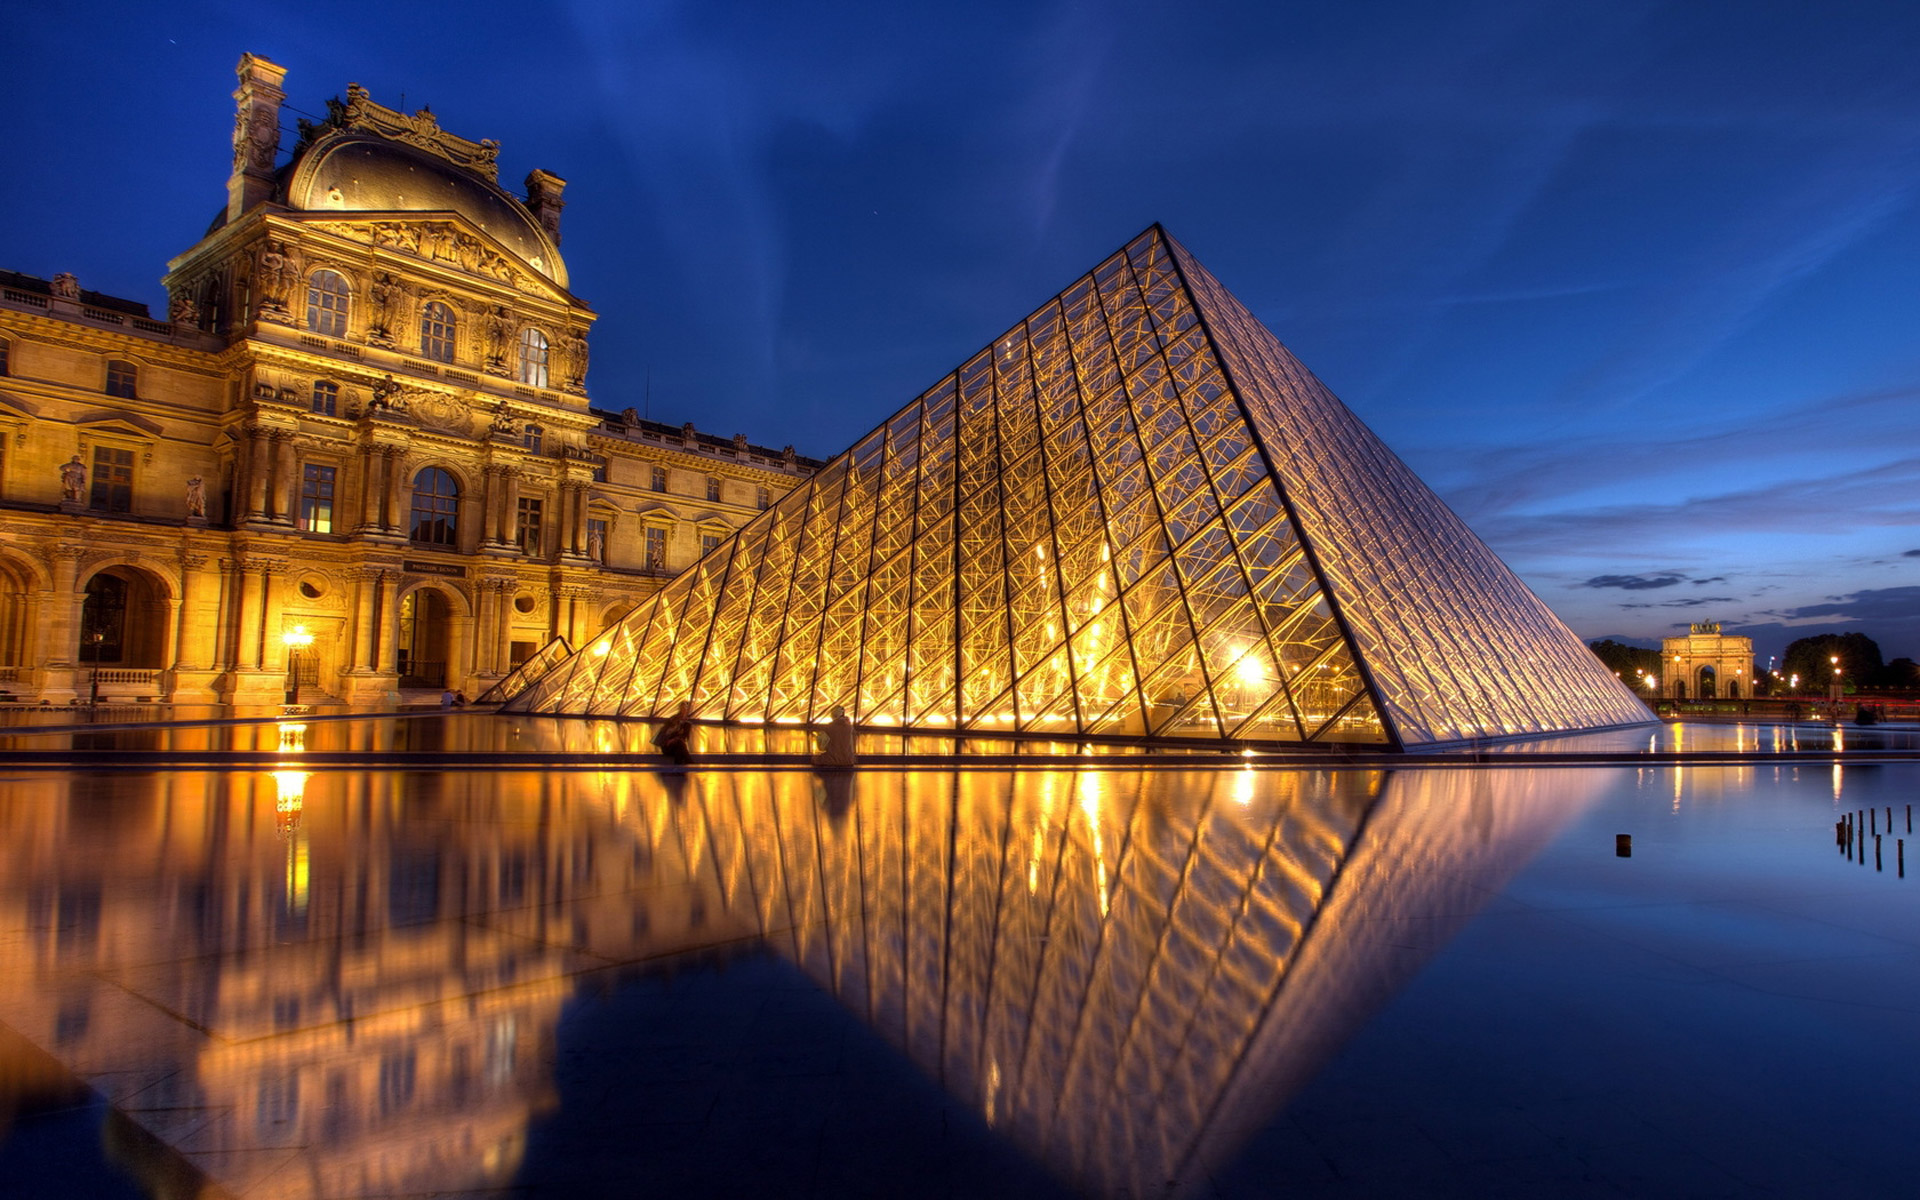 The-Louvre-16.jpg